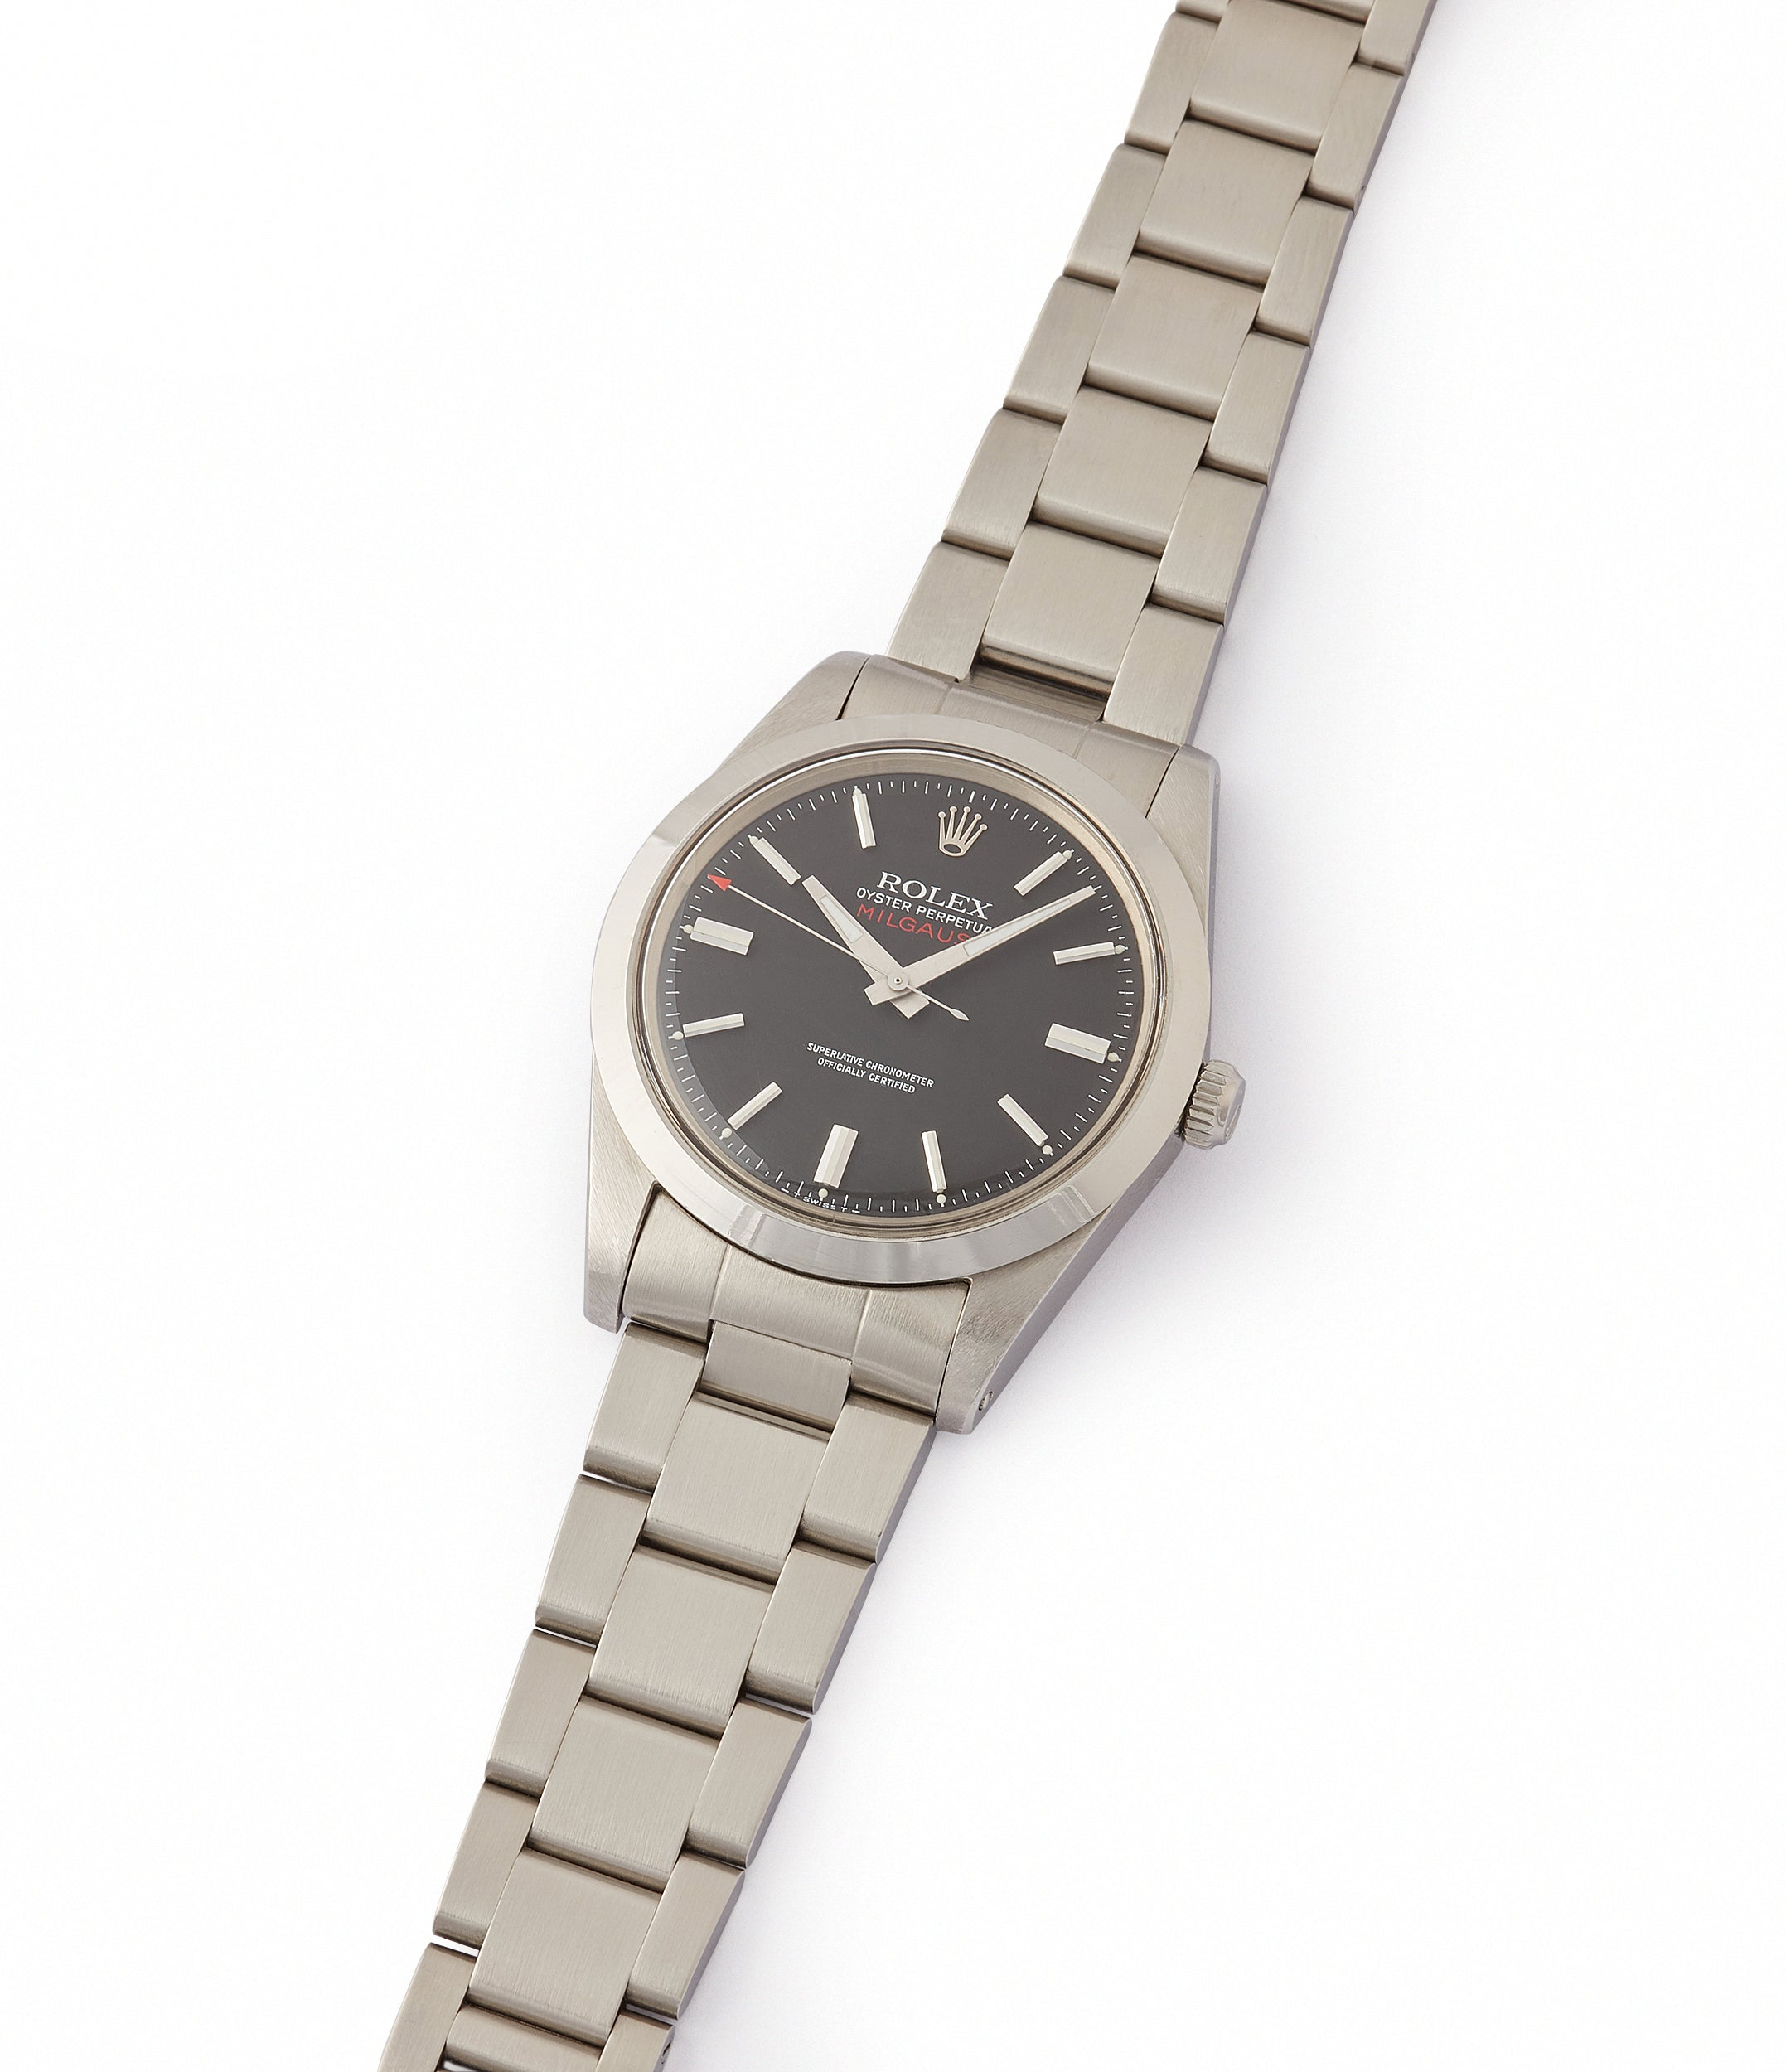 selling vintage Rolex Milgauss 1019 steel antimagnetic tool watch for sale online at A Collected Man London UK specialist rare vintage Rolex watches